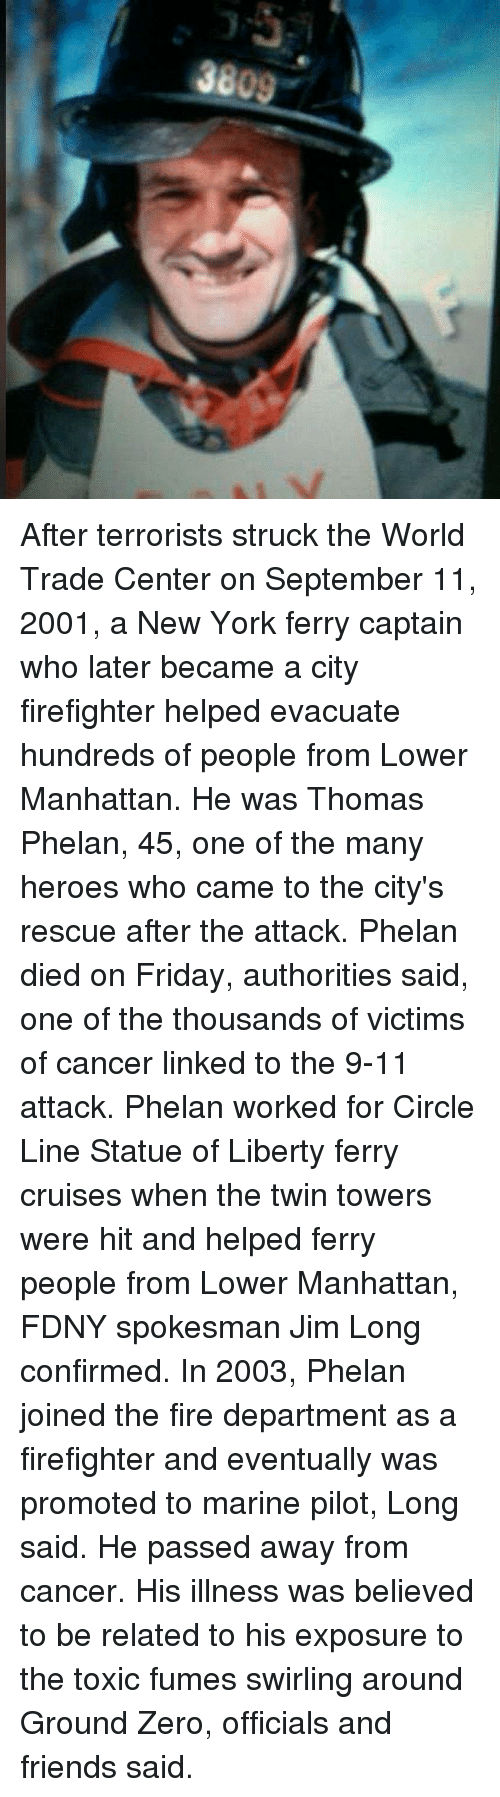 Fumes: After terrorists struck the World Trade Center on September 11, 2001, a New York ferry captain who later became a city firefighter helped evacuate hundreds of people from Lower Manhattan. He was Thomas Phelan, 45, one of the many heroes who came to the city's rescue after the attack. Phelan died on Friday, authorities said, one of the thousands of victims of cancer linked to the 9-11 attack. Phelan worked for Circle Line Statue of Liberty ferry cruises when the twin towers were hit and helped ferry people from Lower Manhattan, FDNY spokesman Jim Long confirmed. In 2003, Phelan joined the fire department as a firefighter and eventually was promoted to marine pilot, Long said. He passed away from cancer. His illness was believed to be related to his exposure to the toxic fumes swirling around Ground Zero, officials and friends said.